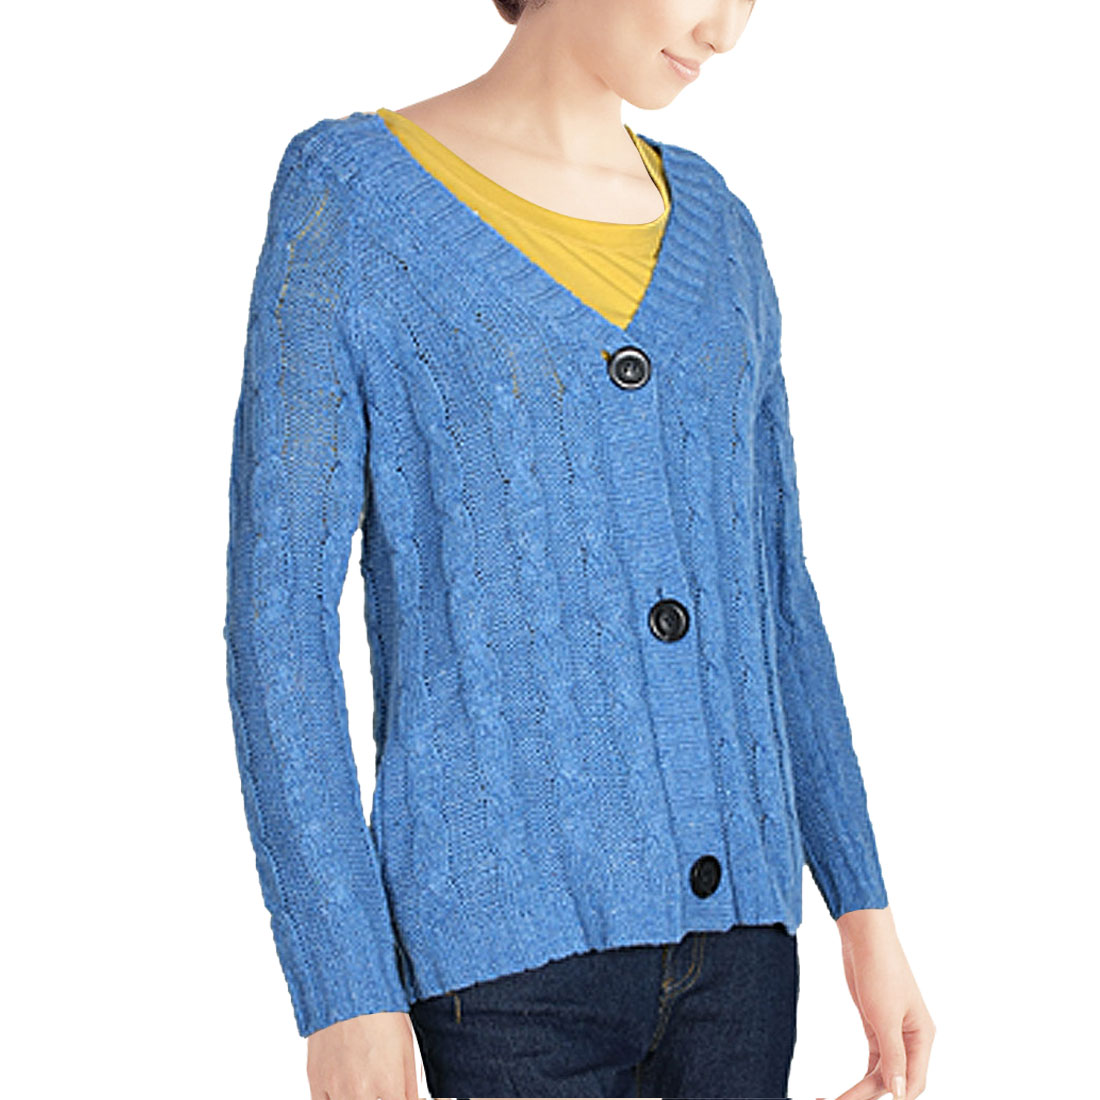 Blue Cable Knitting Braid Pattern Sweater Coat Cardigan for Woman S